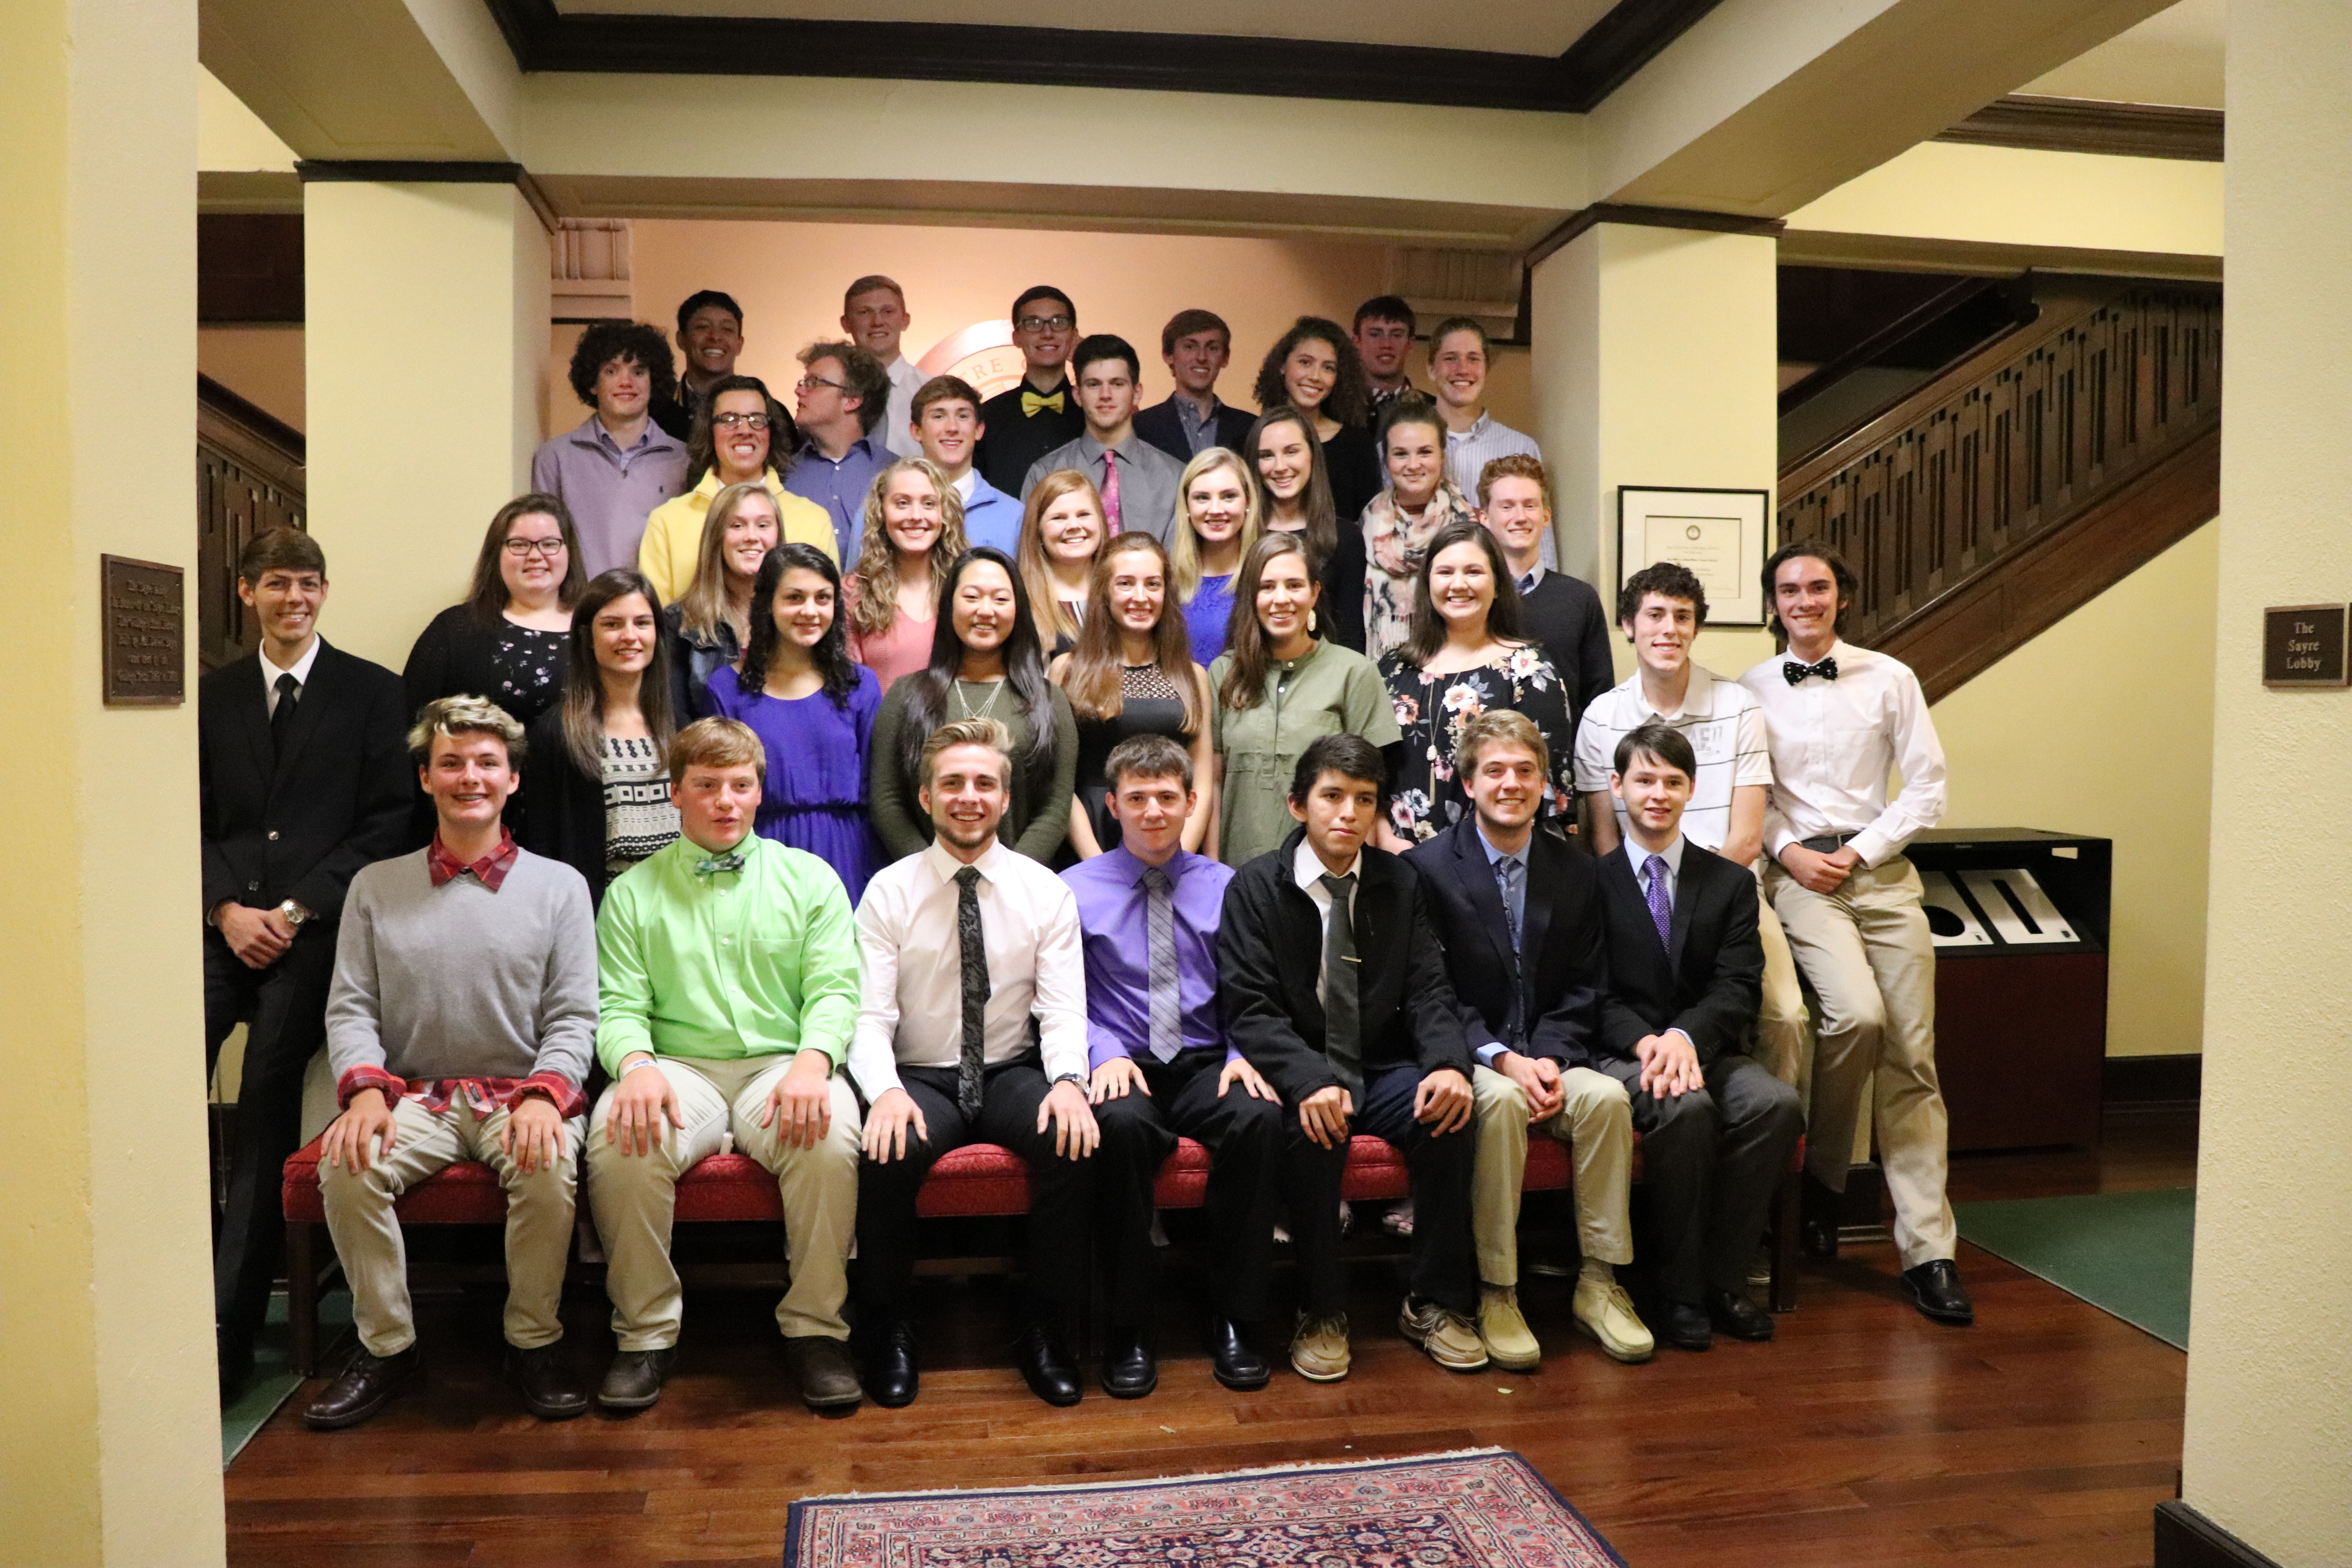 A record of 53 BCHS seniors scored an average composite score of 28+ on the ACT